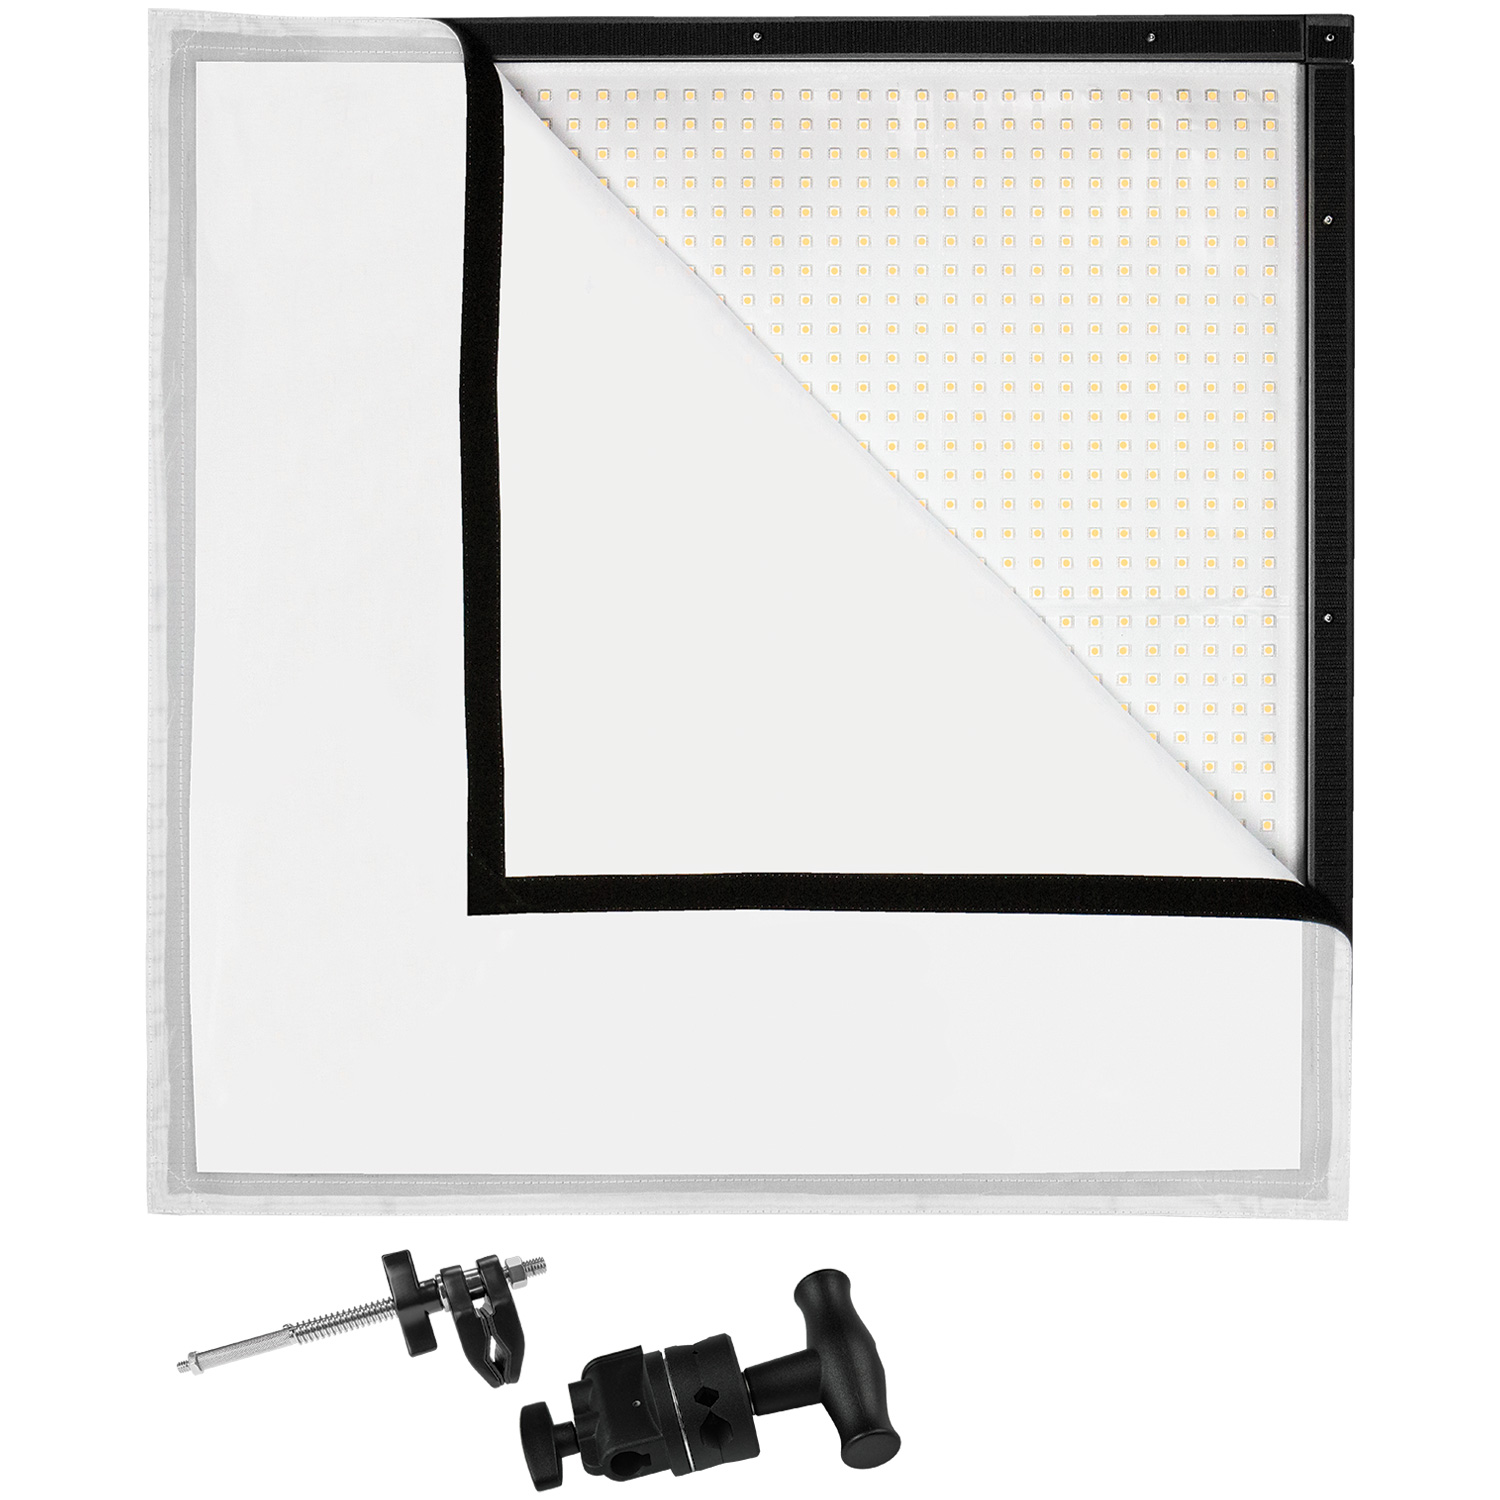 Original Flex Daylight LED 1-Light Set (2' x 2, US/CA Plug')